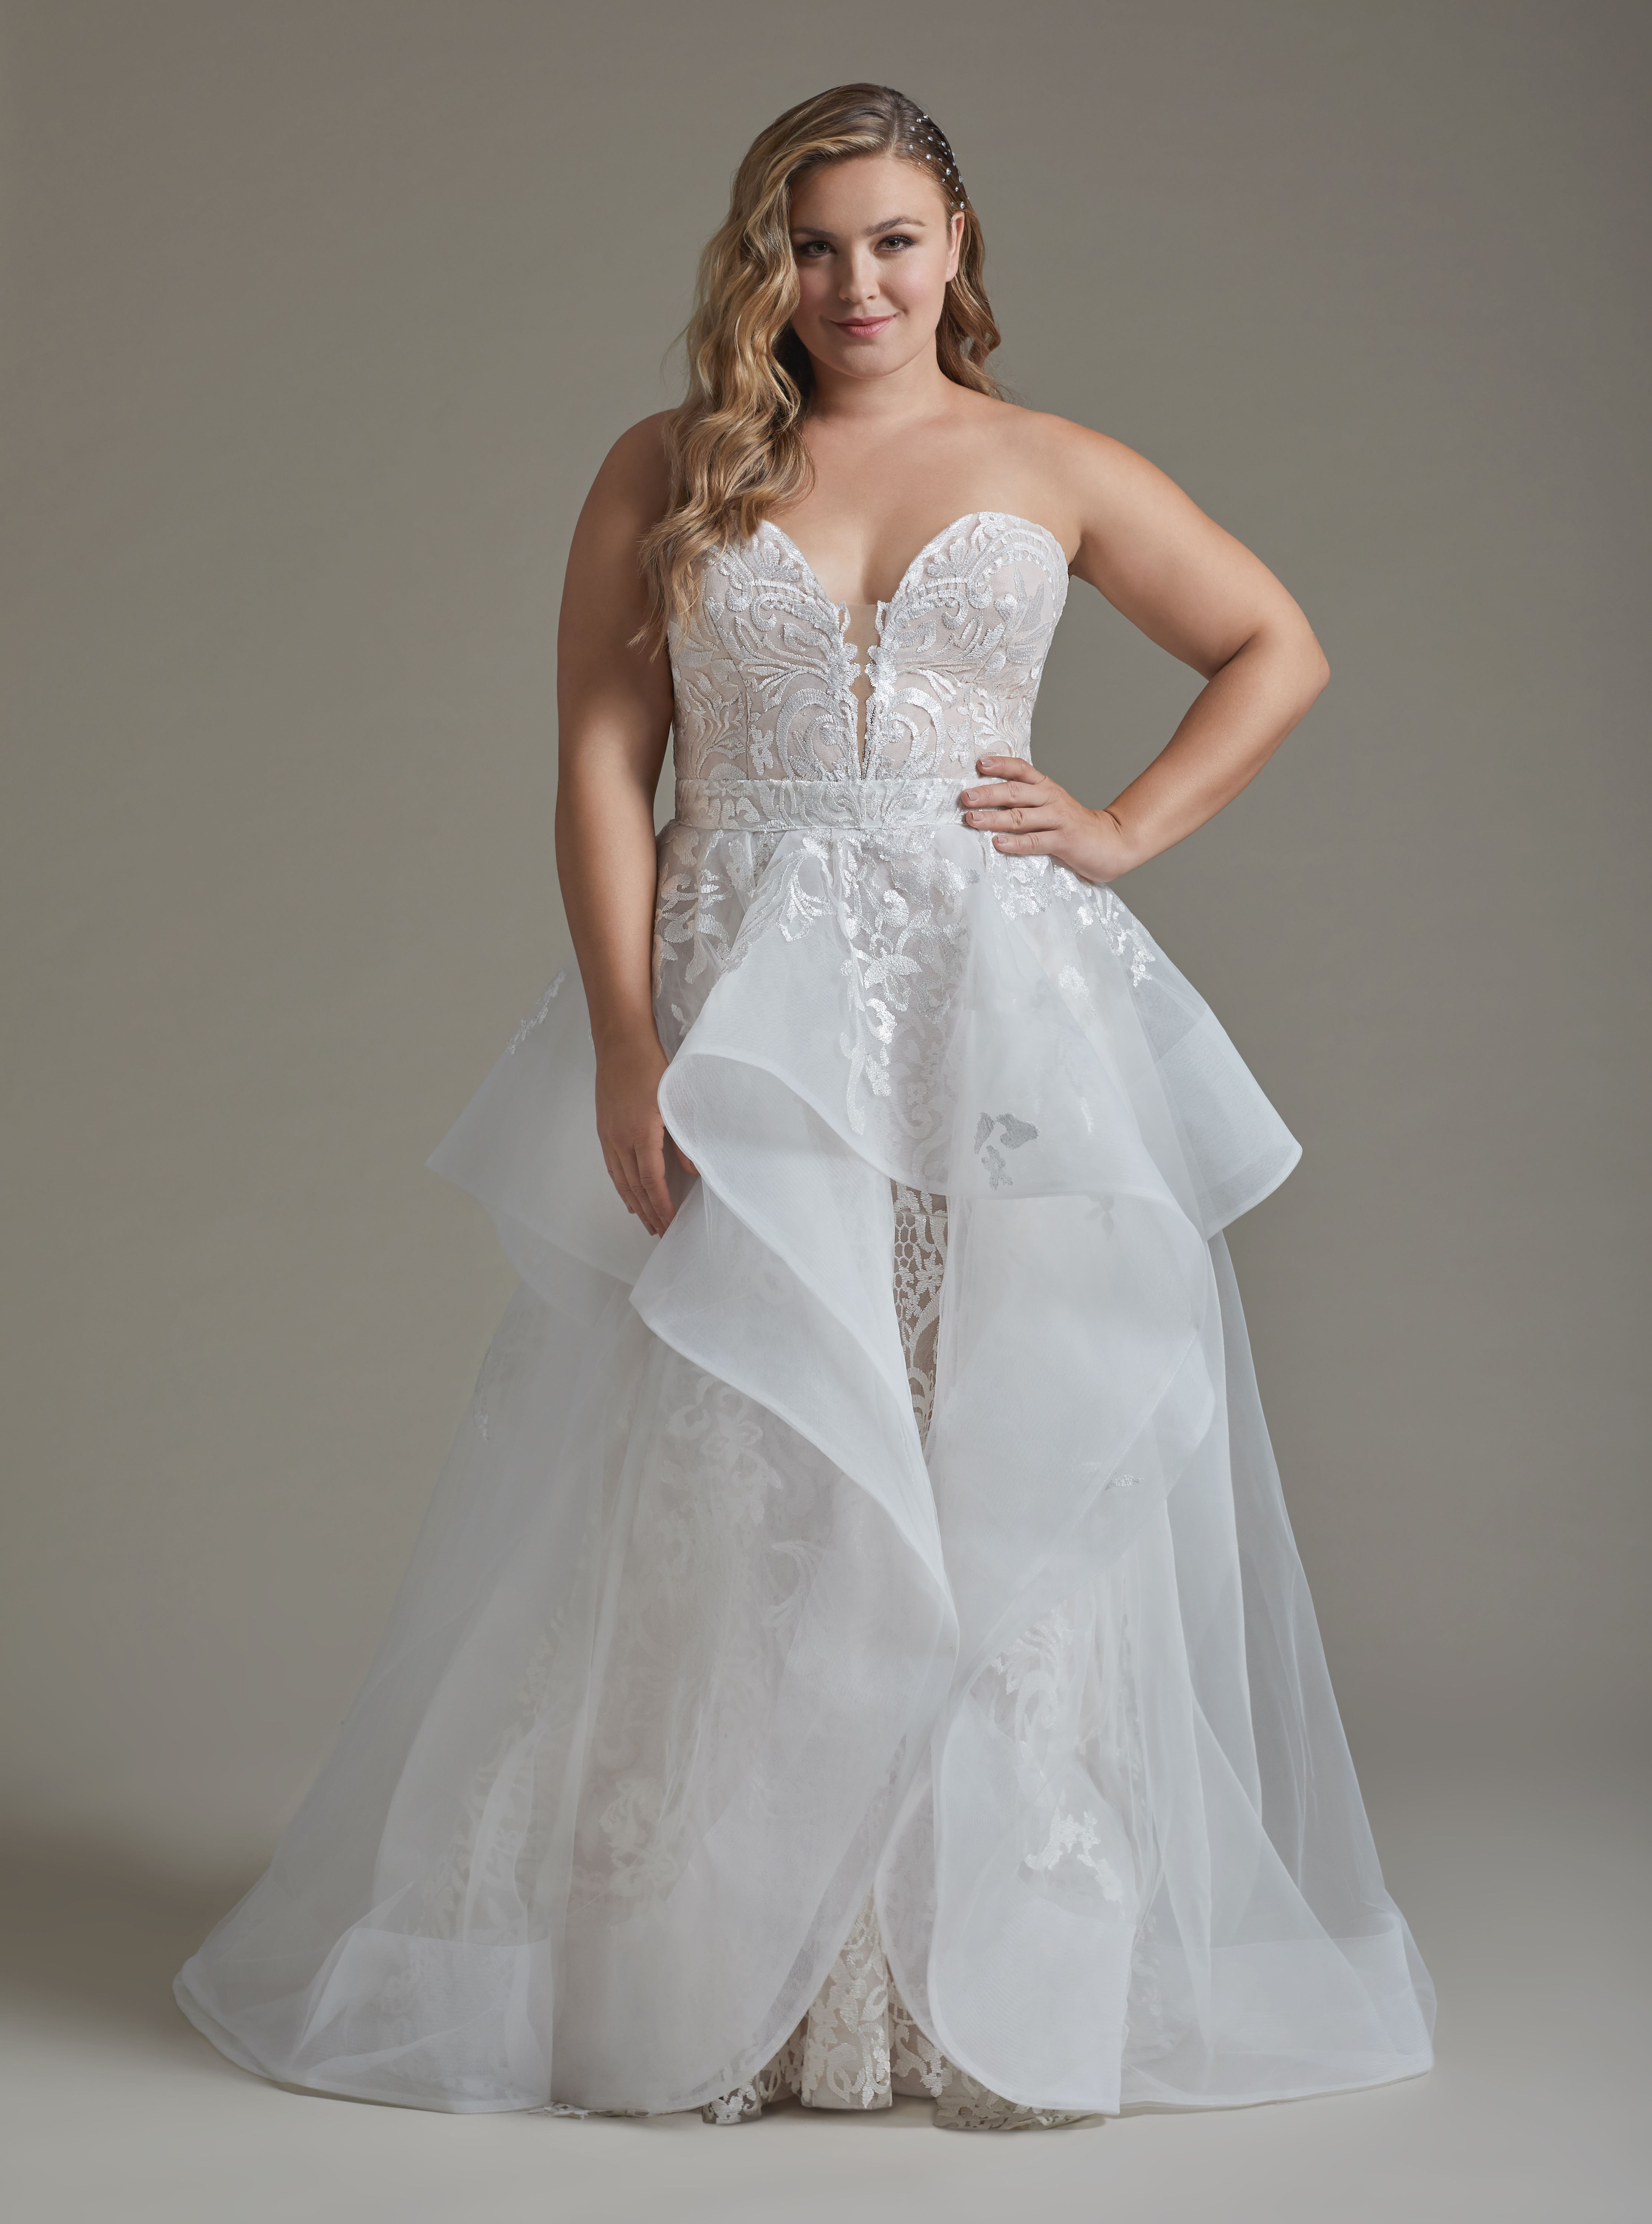 Style 6914s Elke Hayley Paige Plus Size Bridal Gown Ivory Luxembourg Two Piece Gown Fi Haley Paige Wedding Dress Wedding Dress Two Piece Hayley Paige Bridal [ 6000 x 4457 Pixel ]